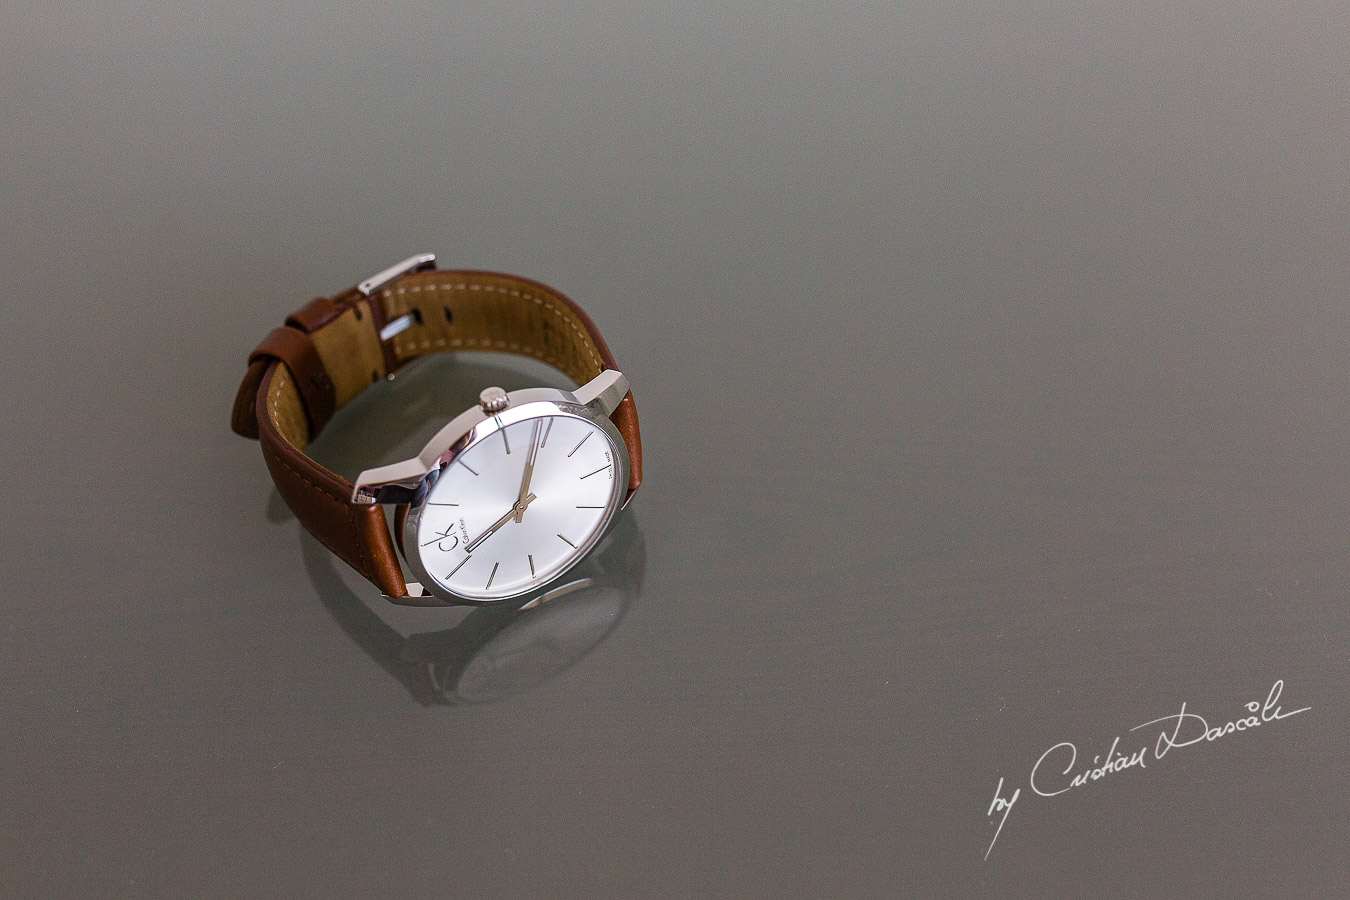 Groom's watch captured at an elegant and romantic wedding at Elias Beach Hotel by Cristian Dascalu.